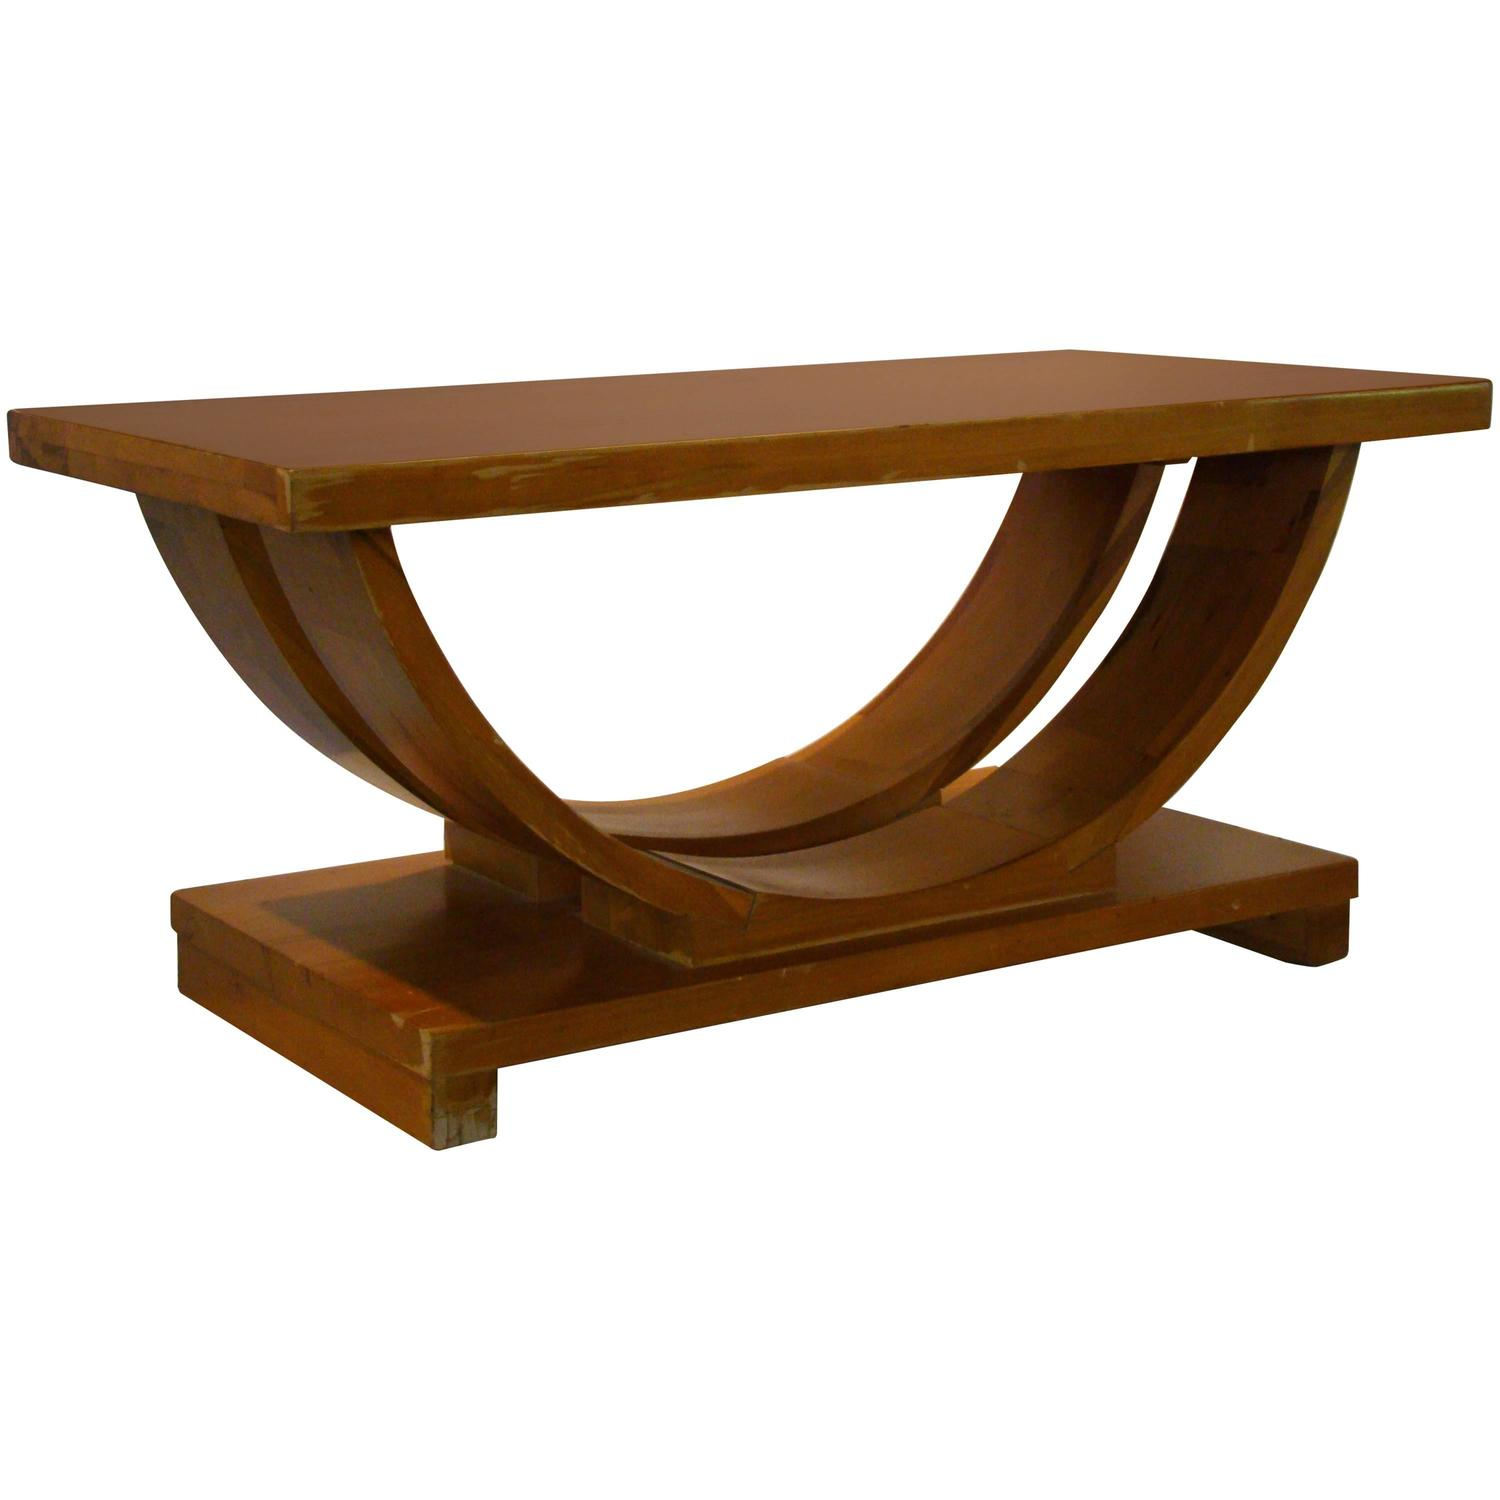 Modernage Furniture pany Tables 11 For Sale at 1stdibs